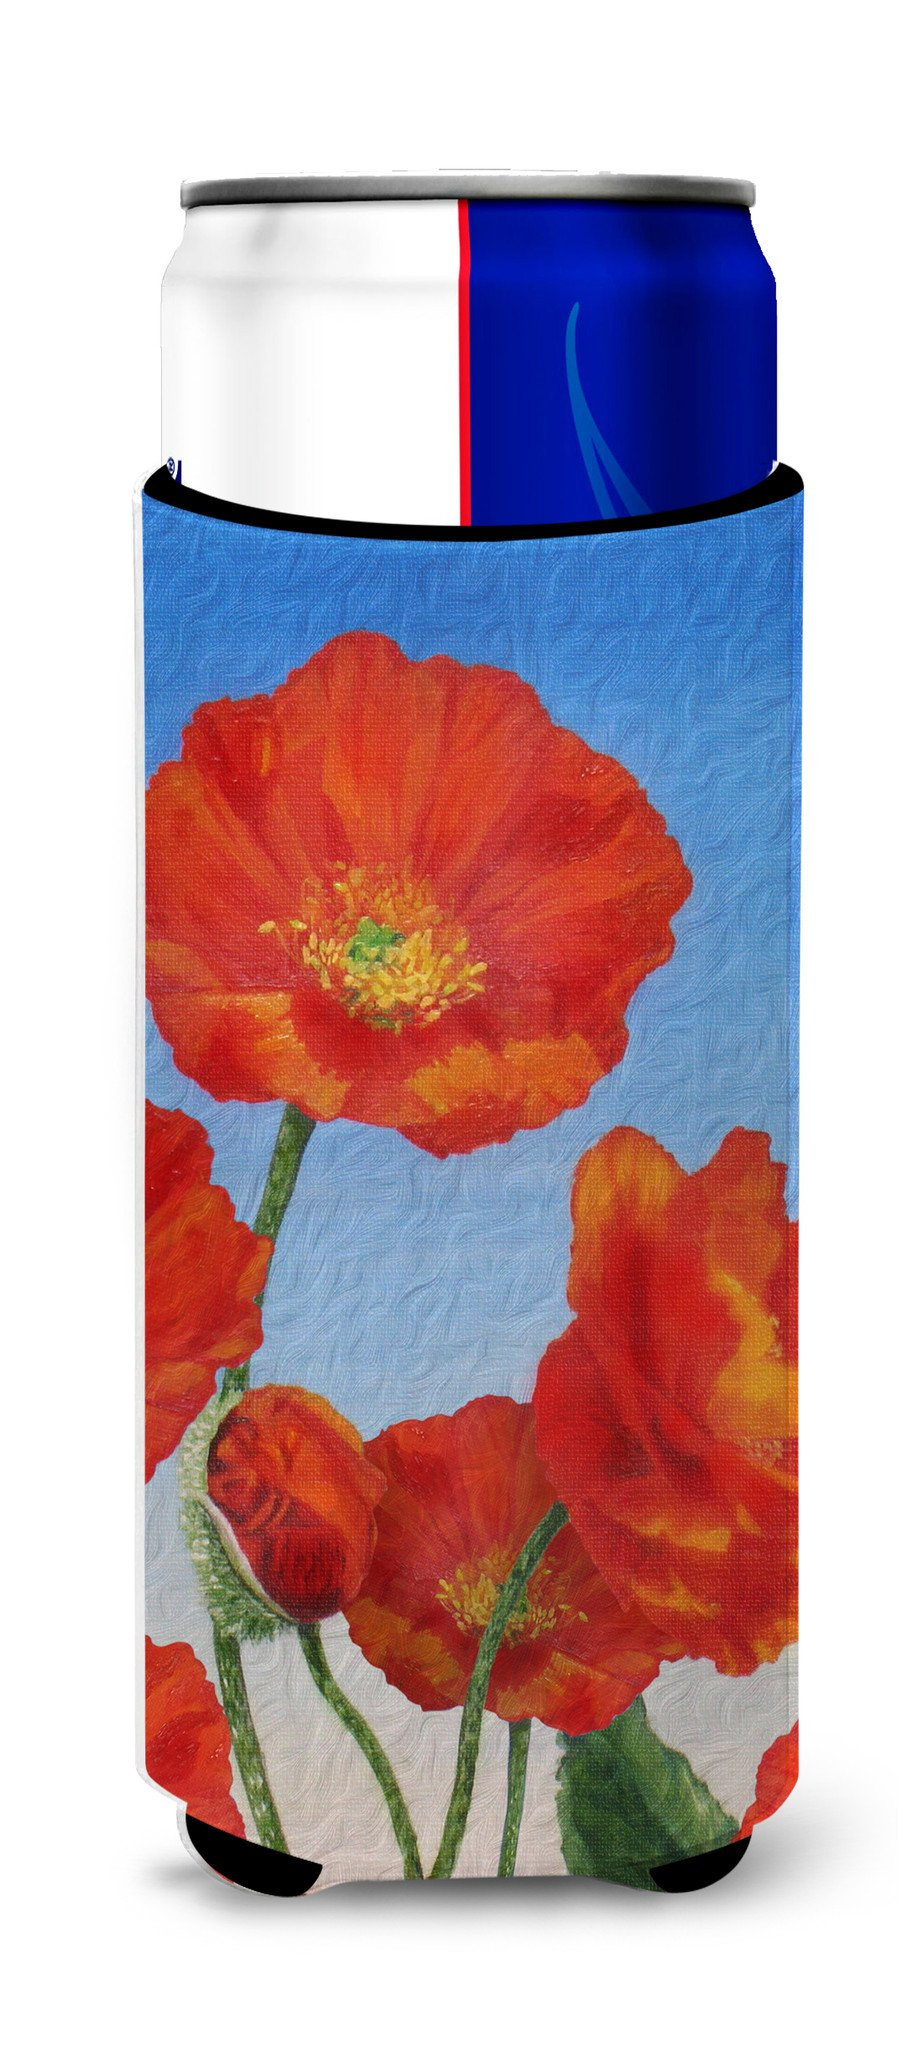 Buy this Poppies by Sinead Jones Ultra Beverage Insulators for slim cans JOS0273MUK